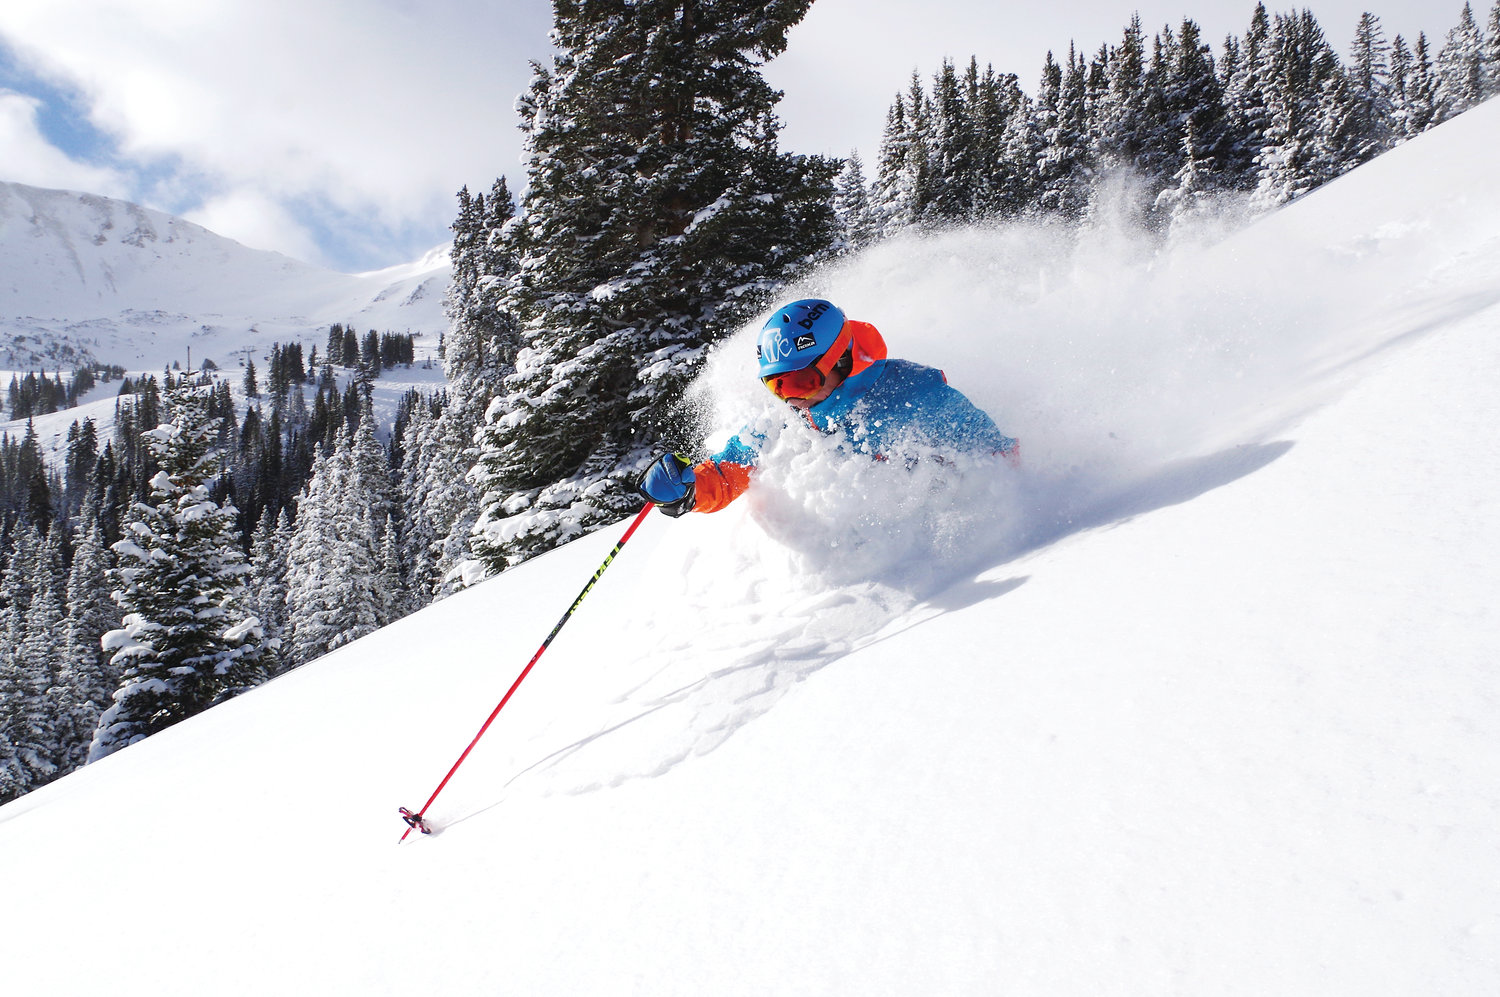 A skier skis through the powder at Loveland Ski Resort.